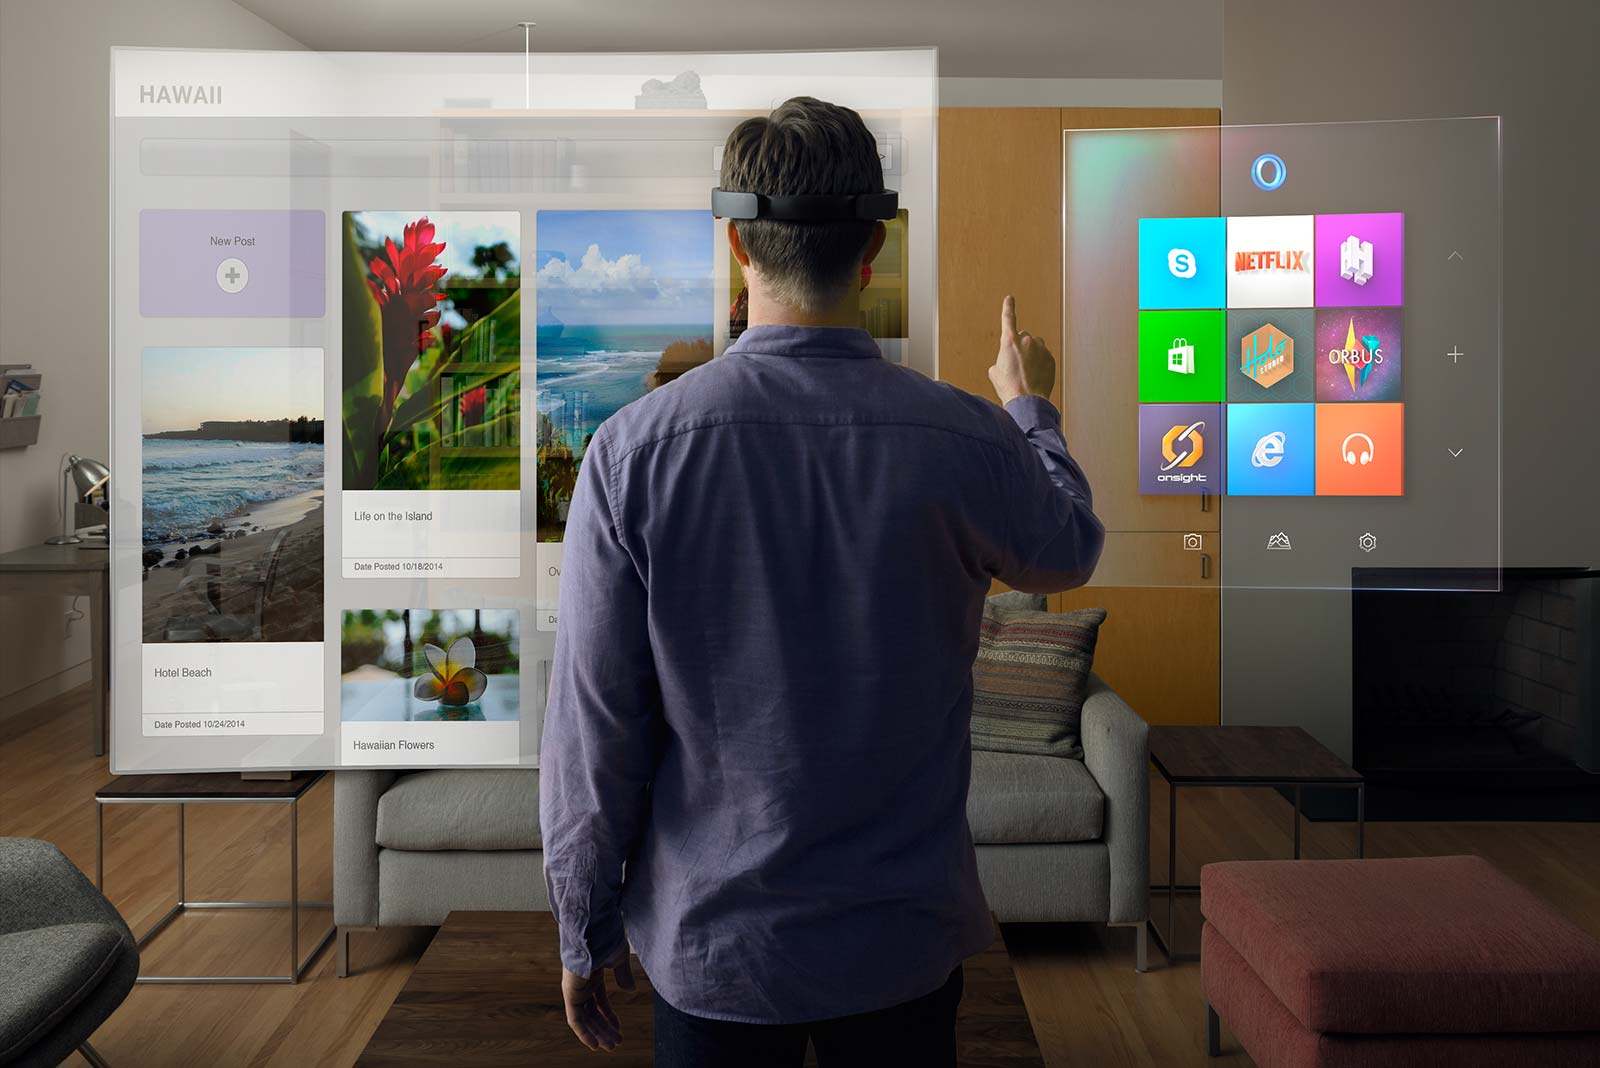 The HoloLens offers a new way to interact at events